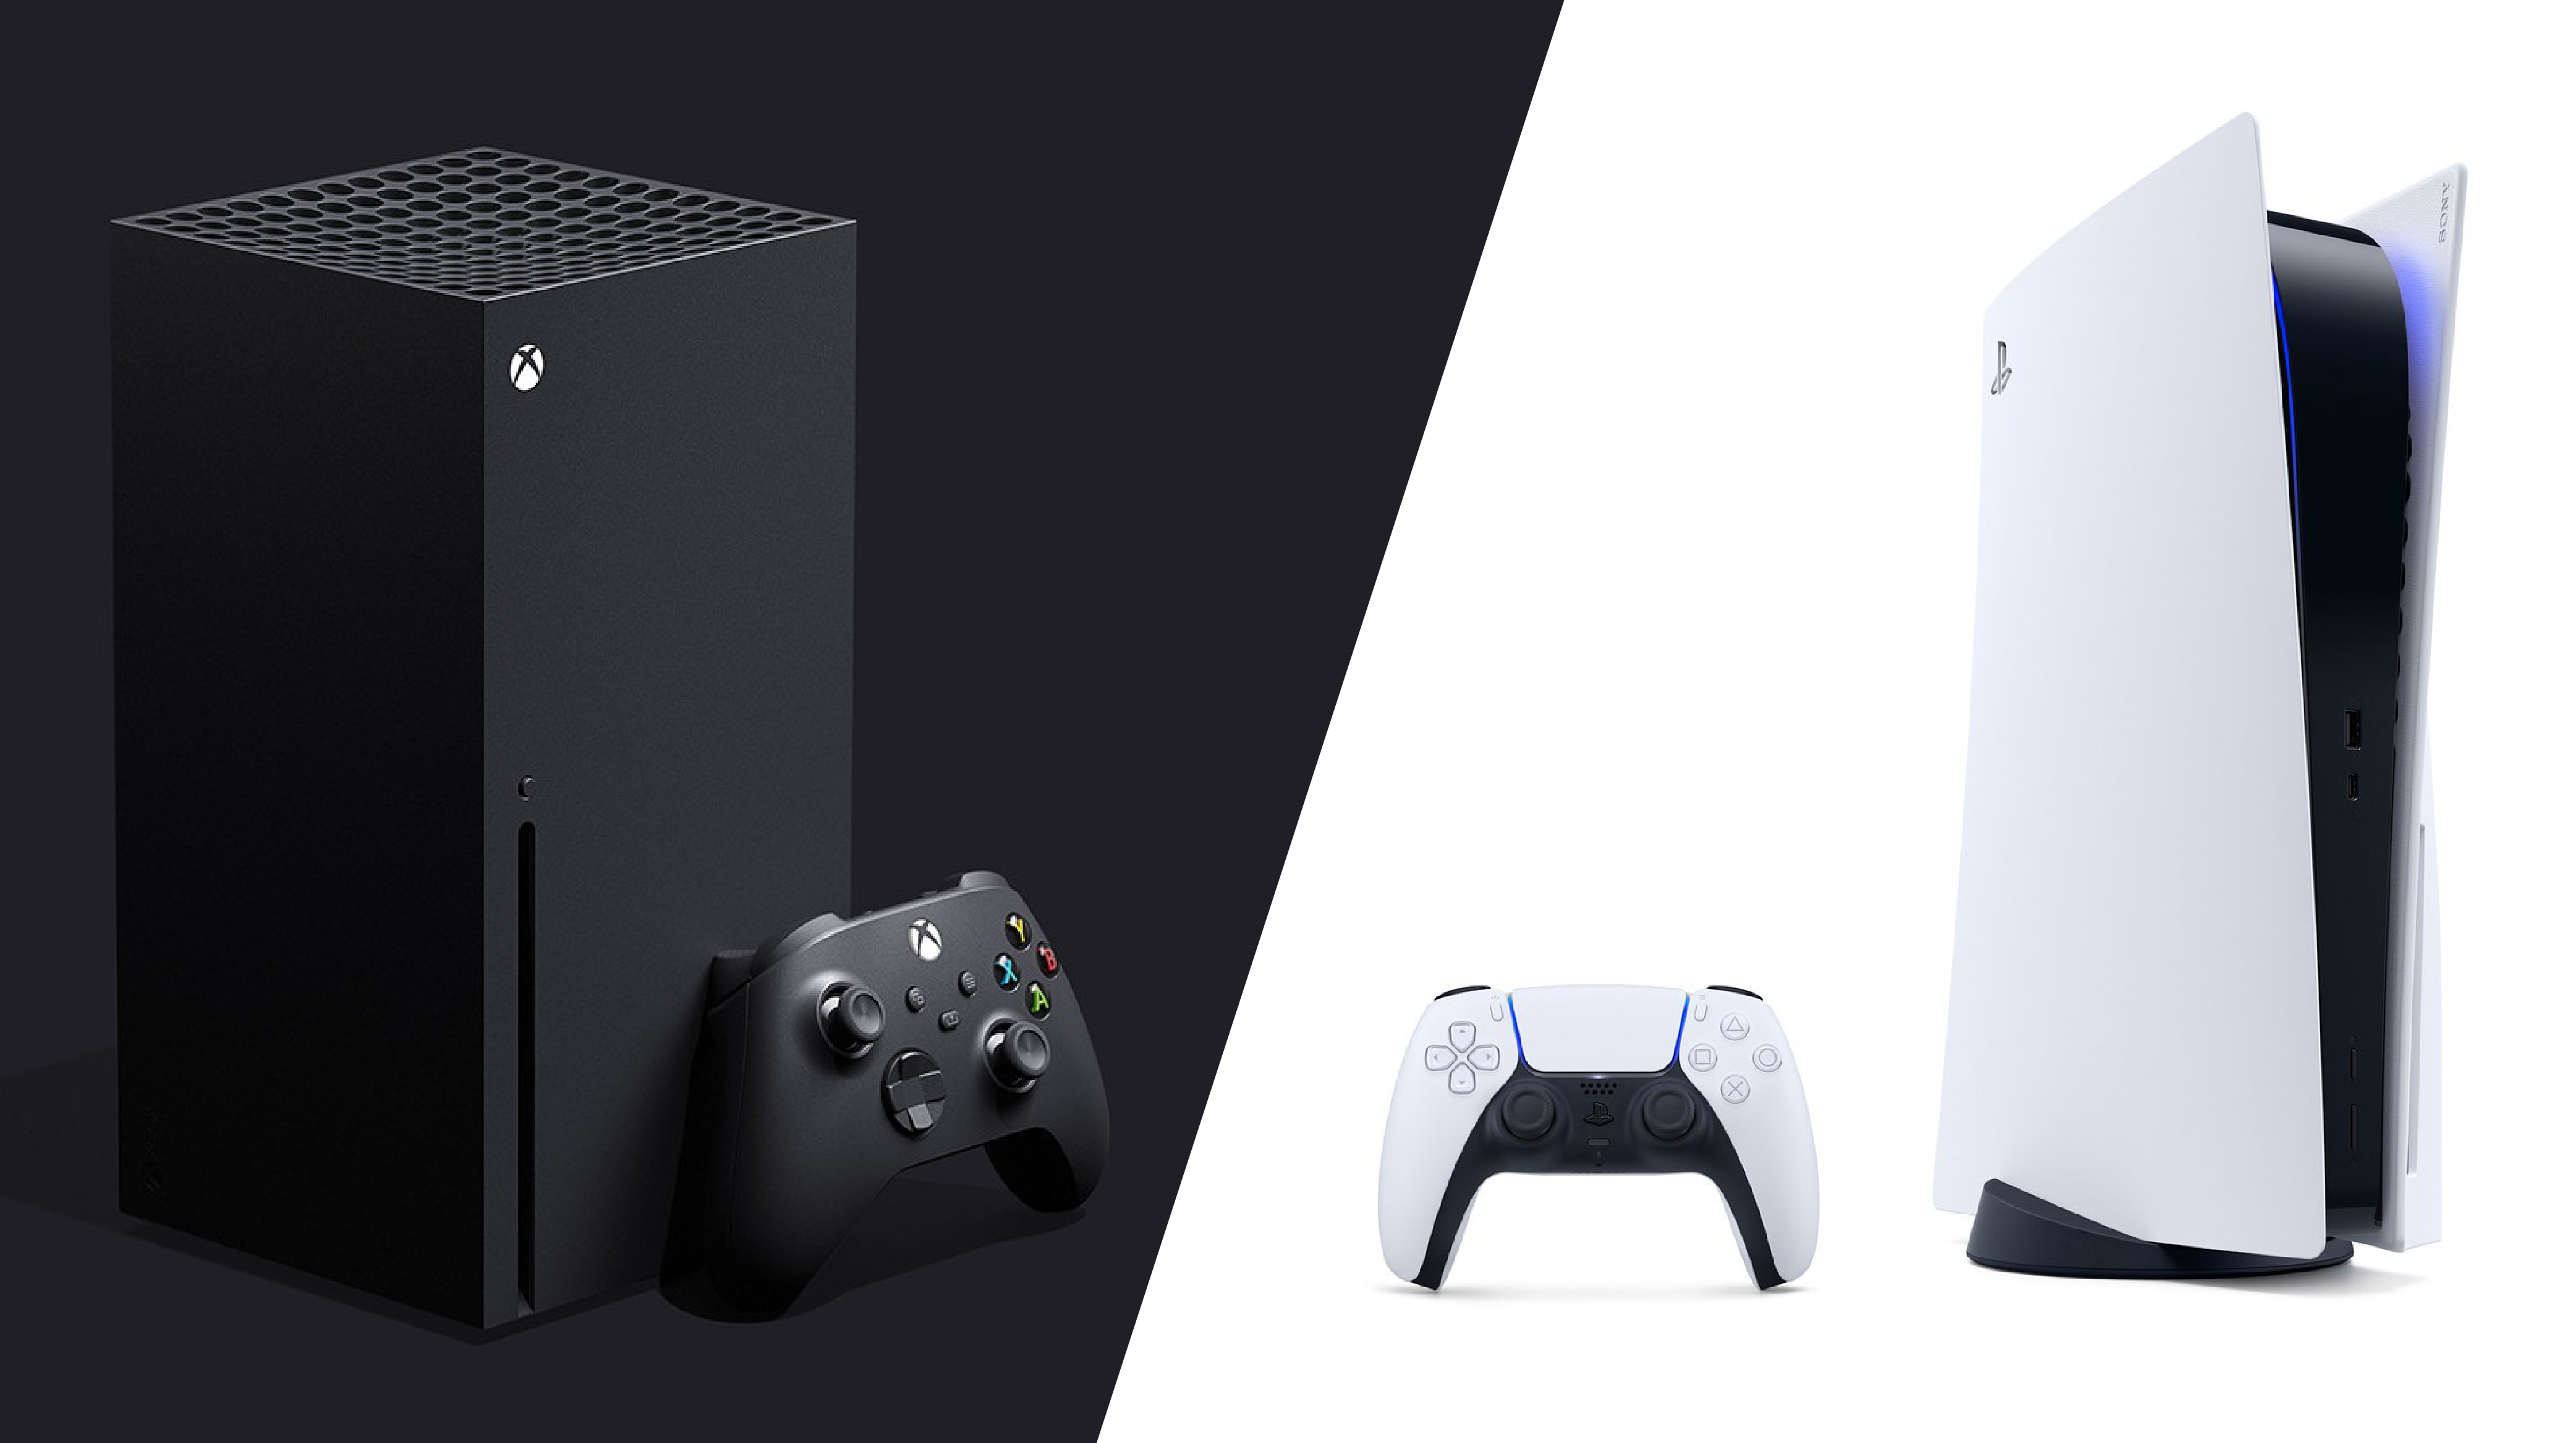 Xbox Series X Vs. Playstation 5 - featured photo | Xbox Series X Vs. Playstation 5: Which Is Better?